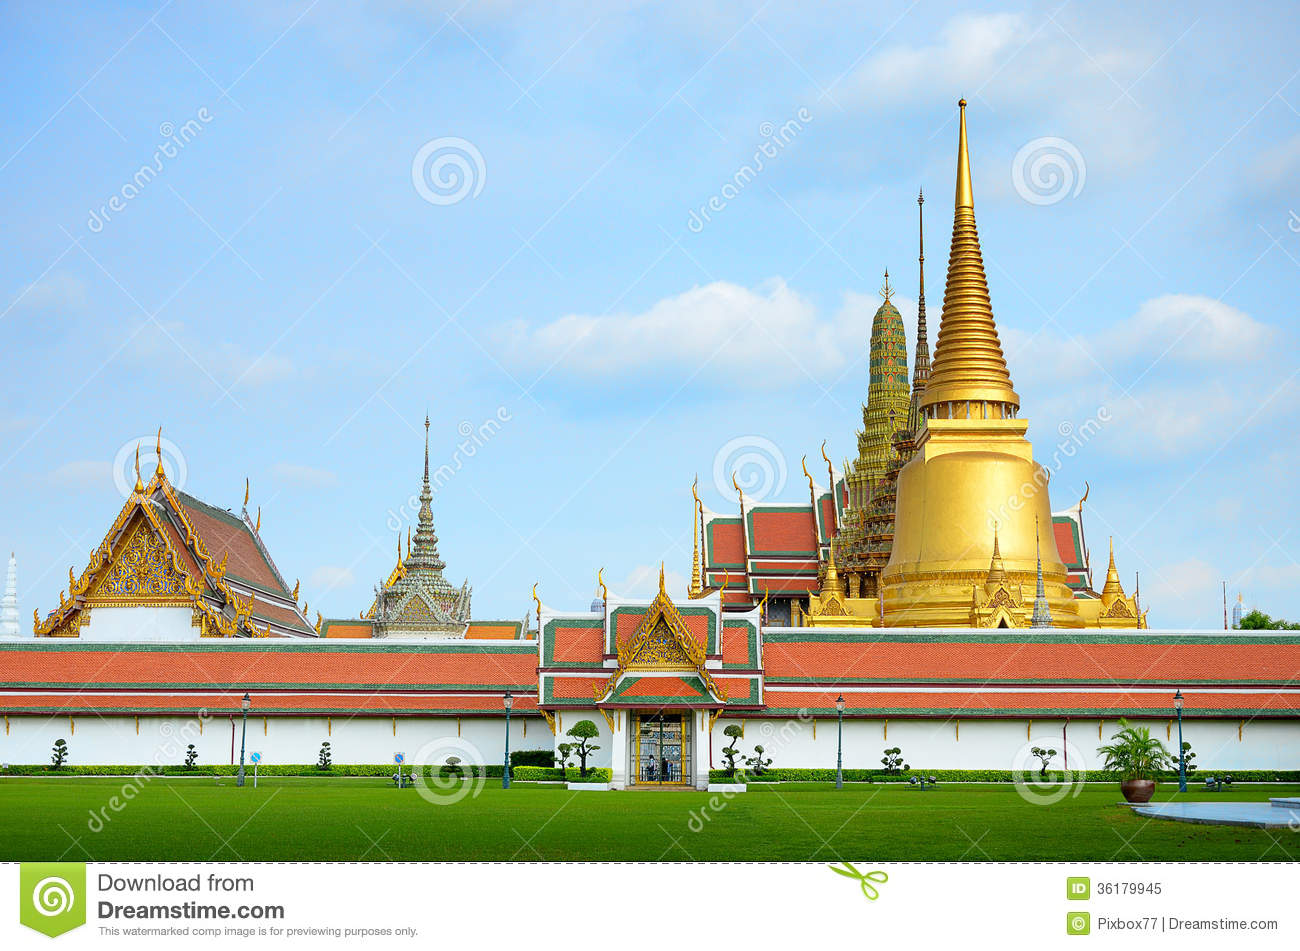 Grand palace download.